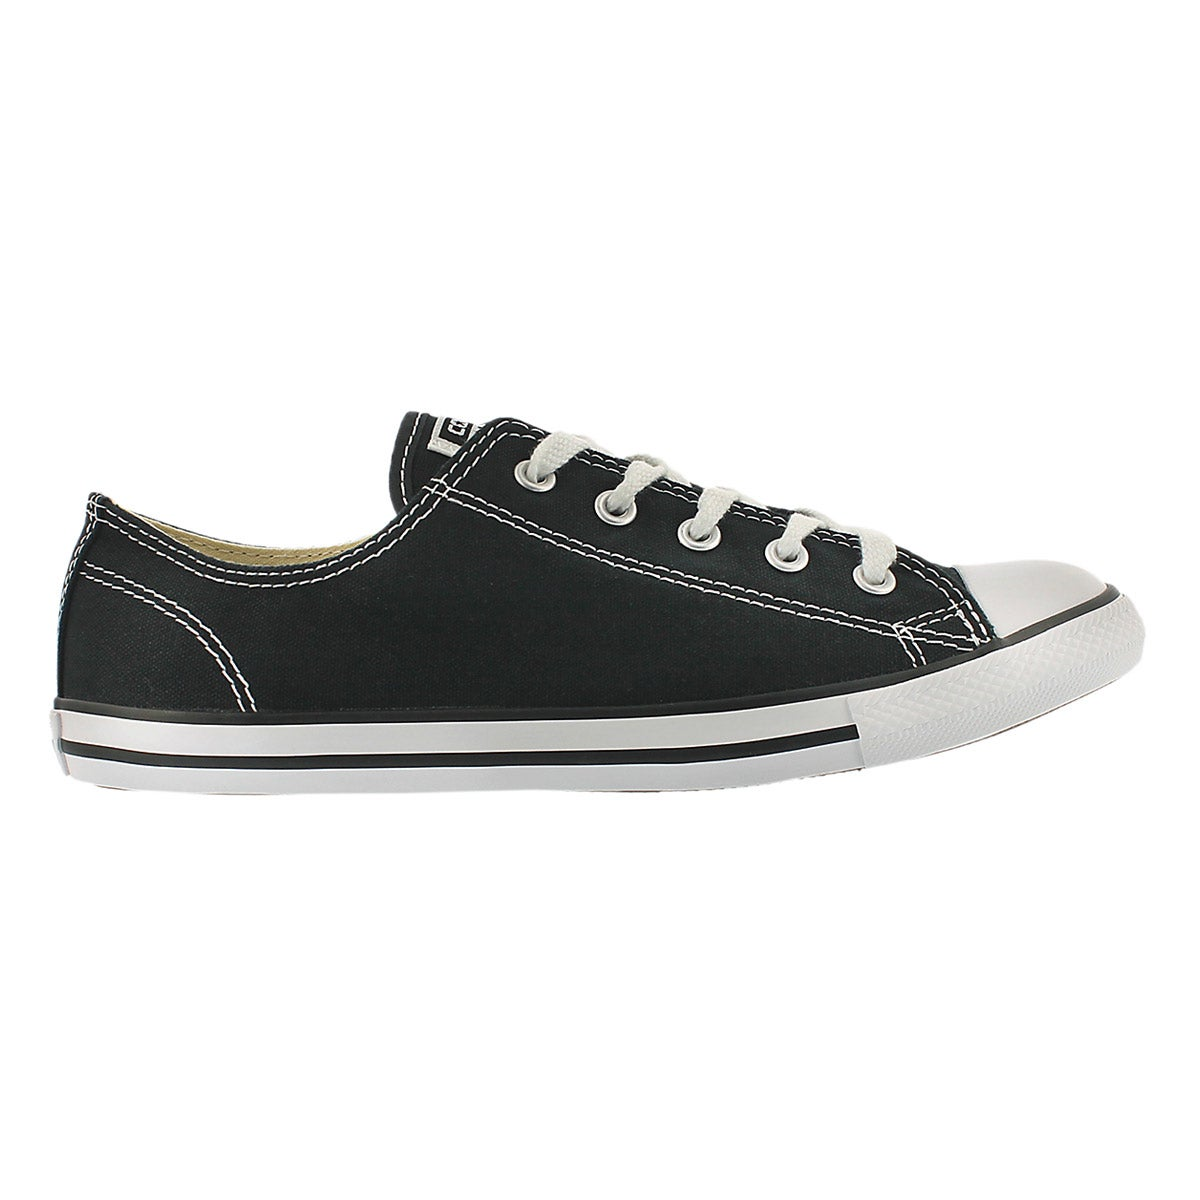 Lds CTAS Dainty Canvas Ox blk snkr